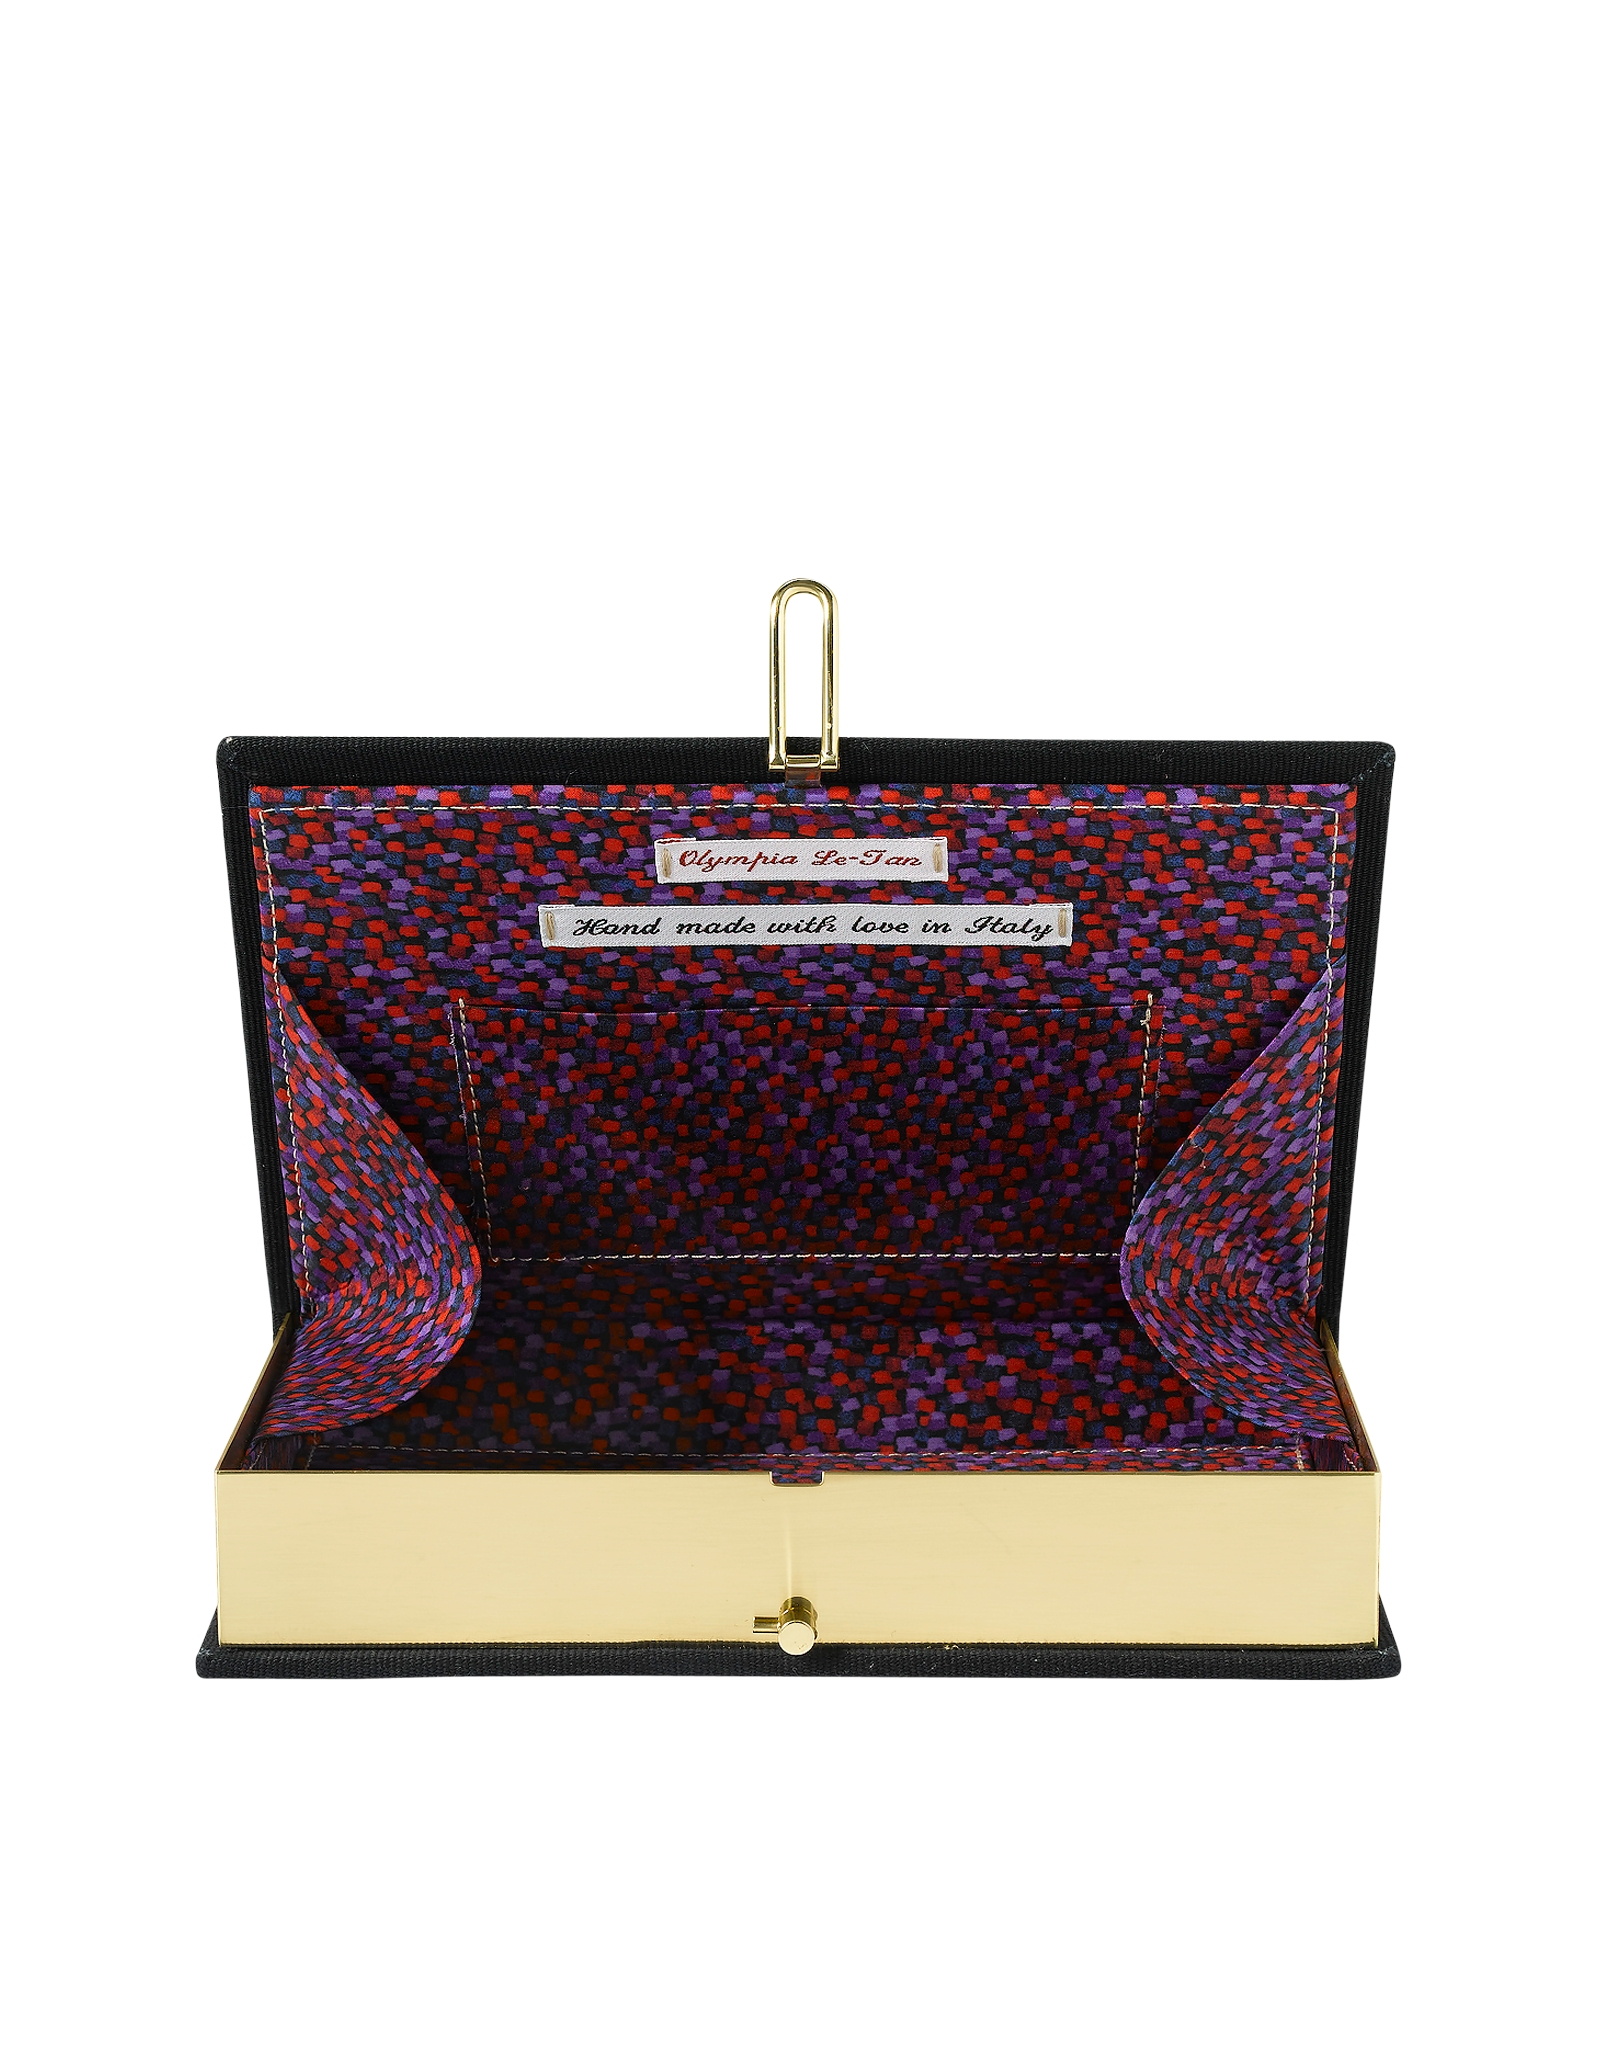 Olympia le tan Thirst For Love Cotton Book Clutch in Black